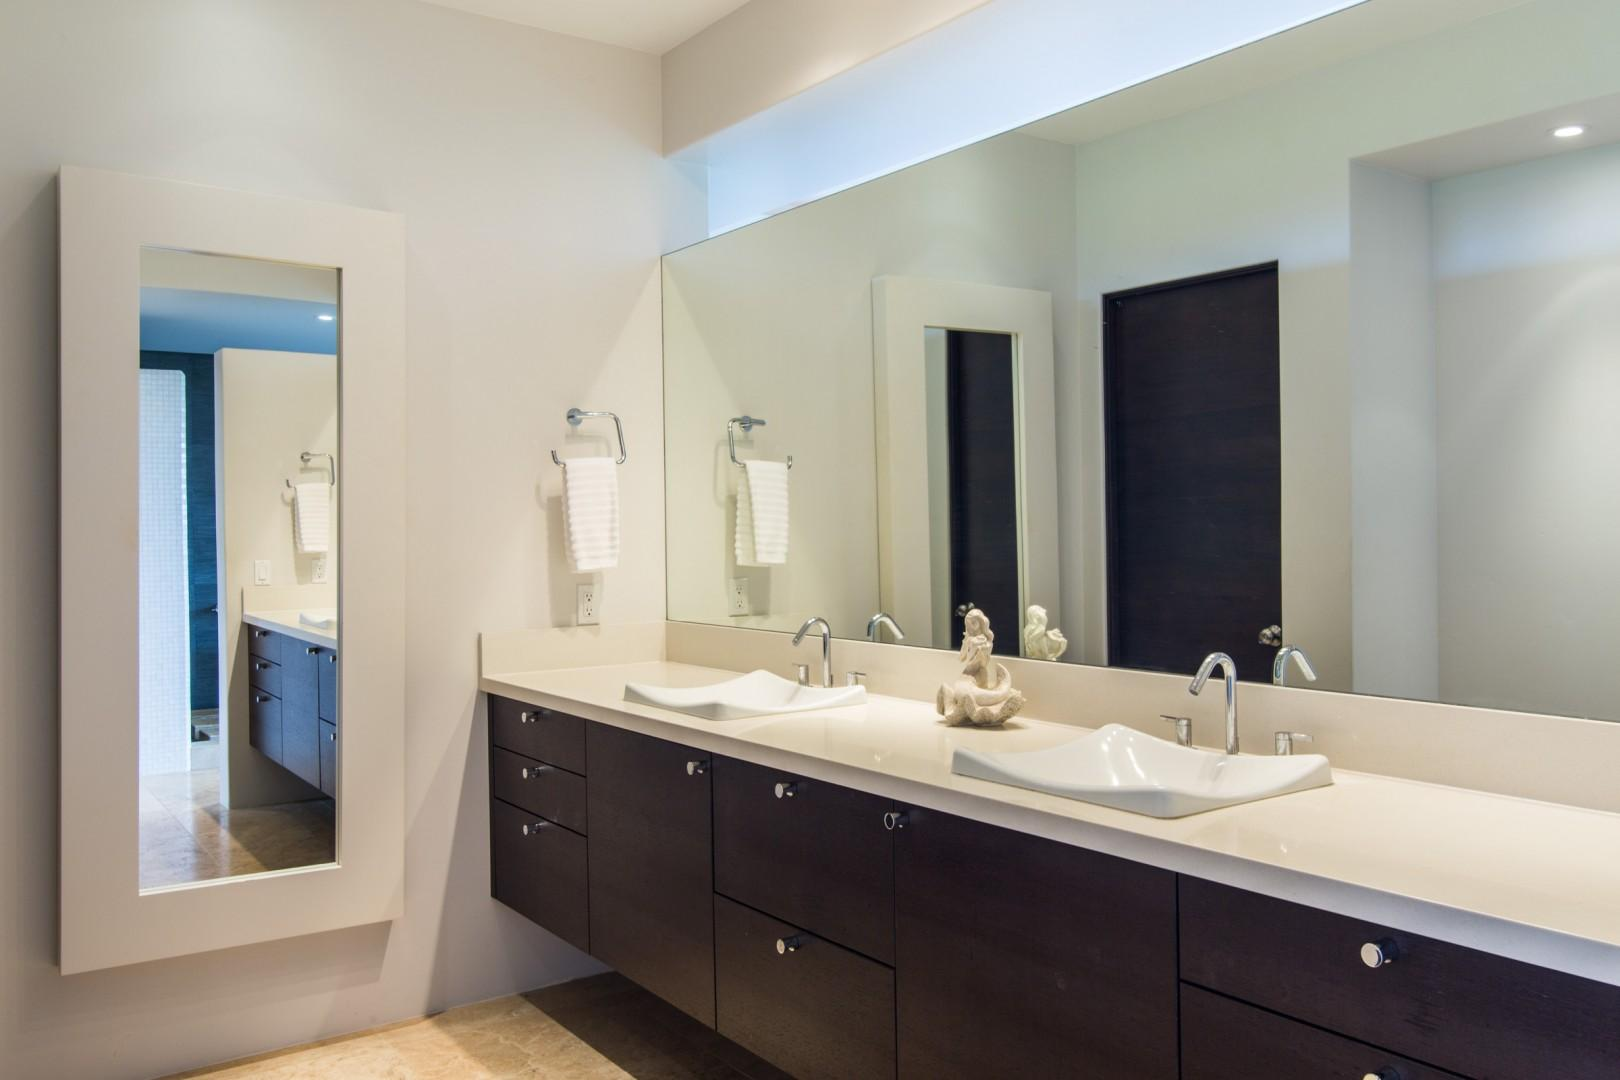 Master bath features double sinks and a large walk-in closet on the left.